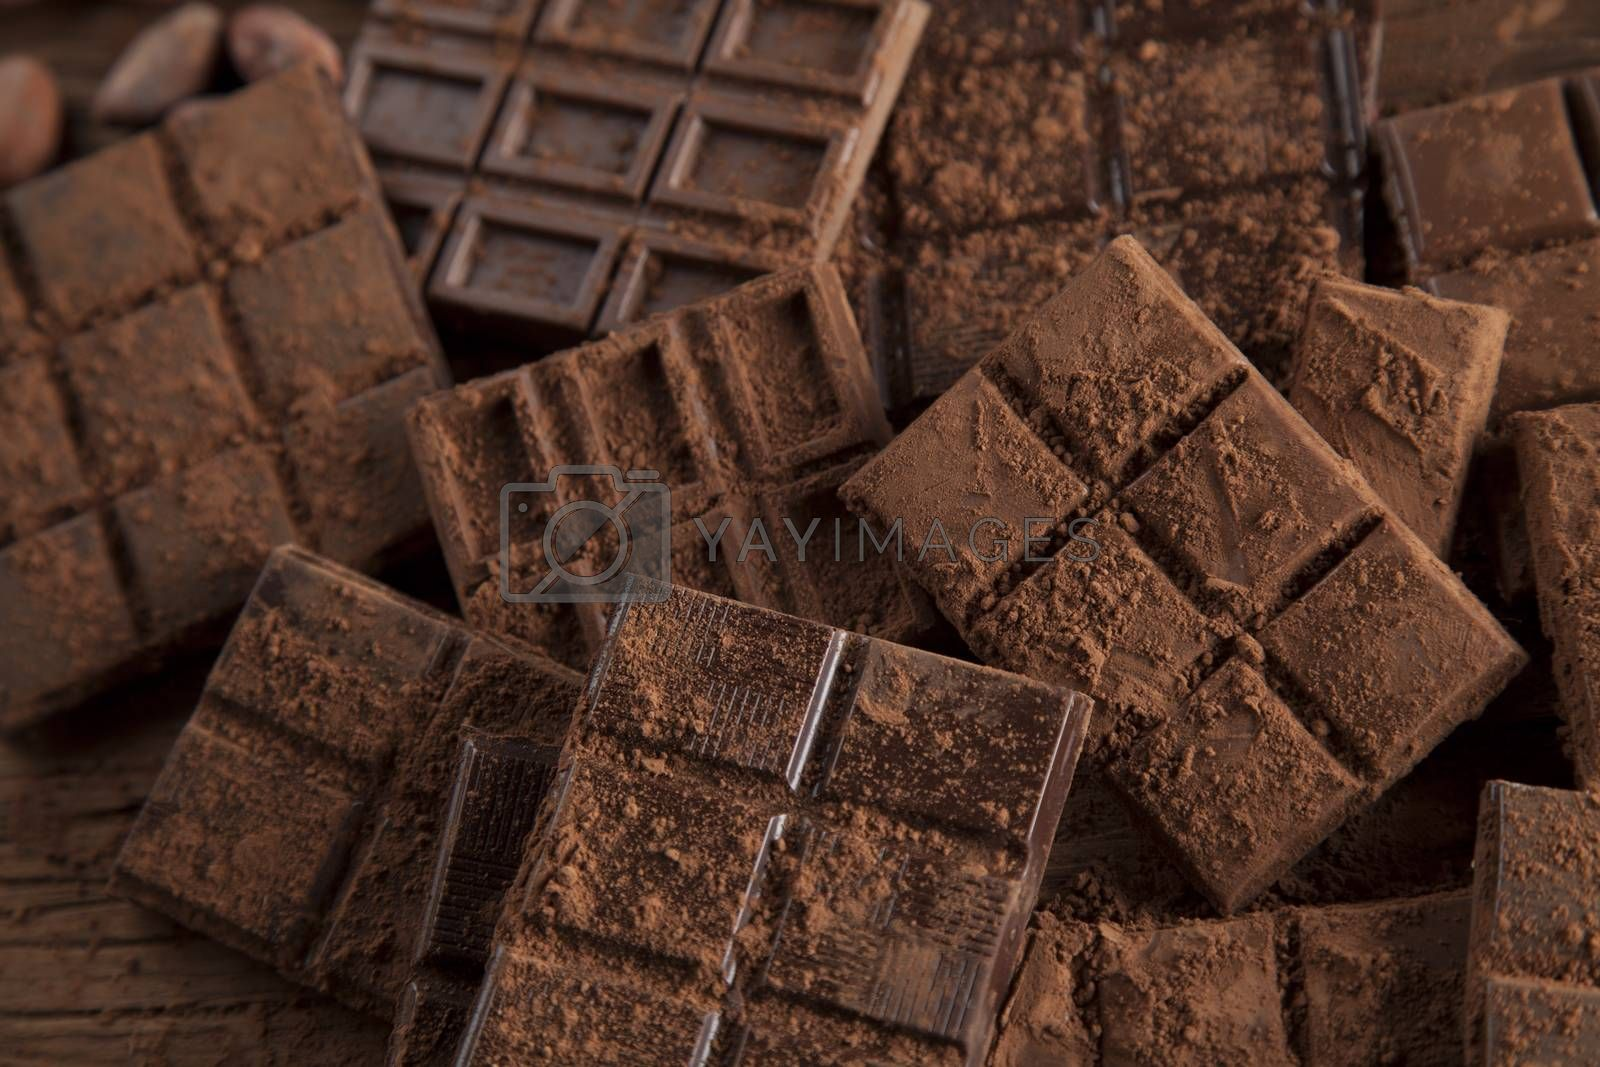 Royalty free image of Bars Chocolate , candy sweet, dessert food on wooden background by JanPietruszka